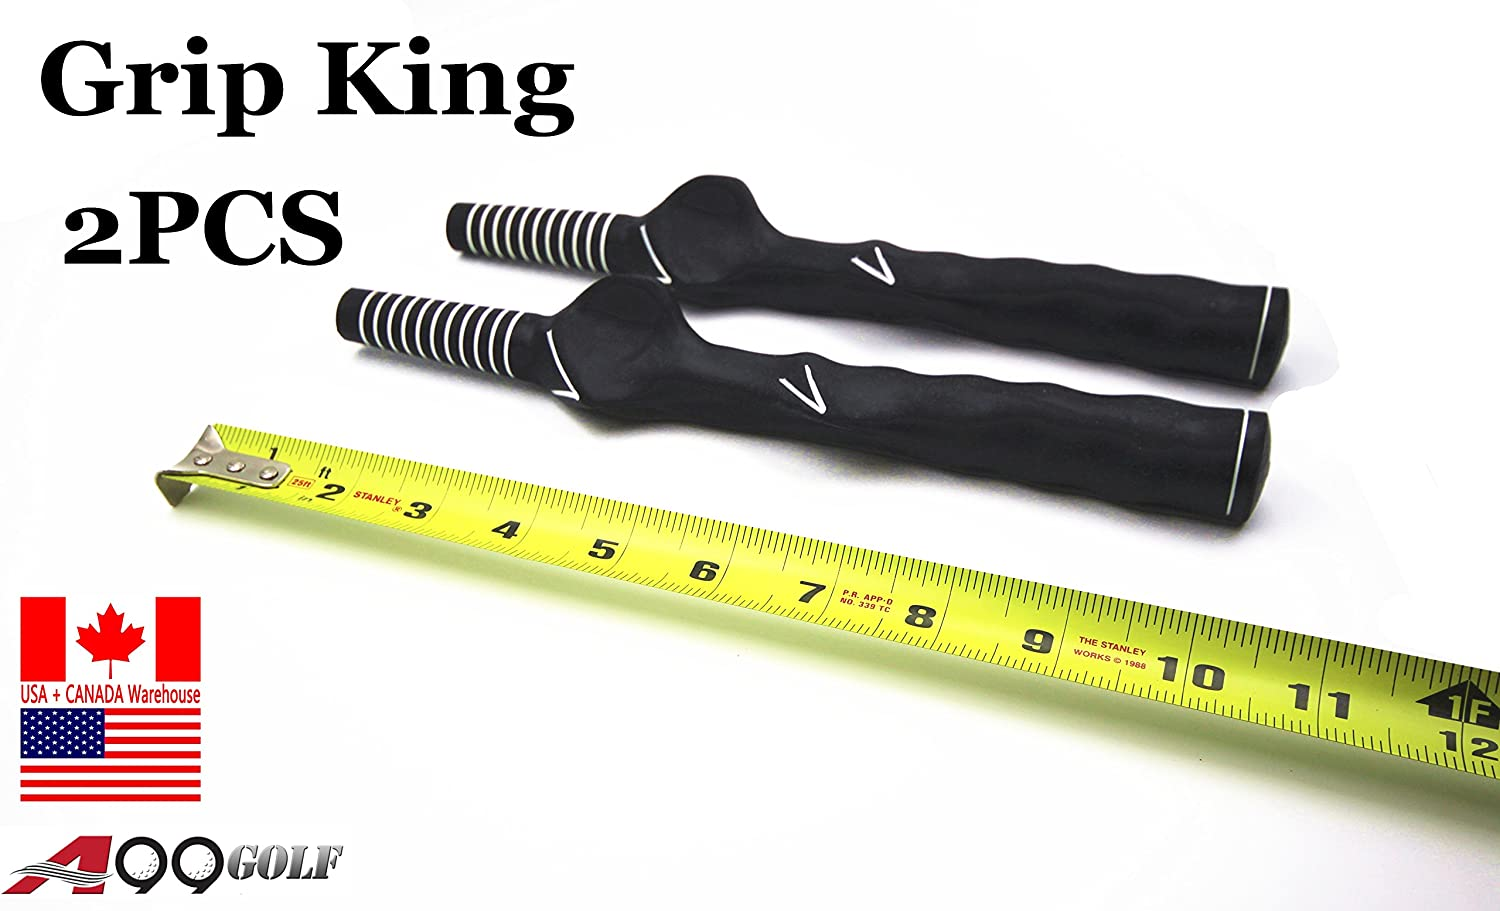 A99 Golf 2pcs Grip King Swing Trainer Left Handed Training aid